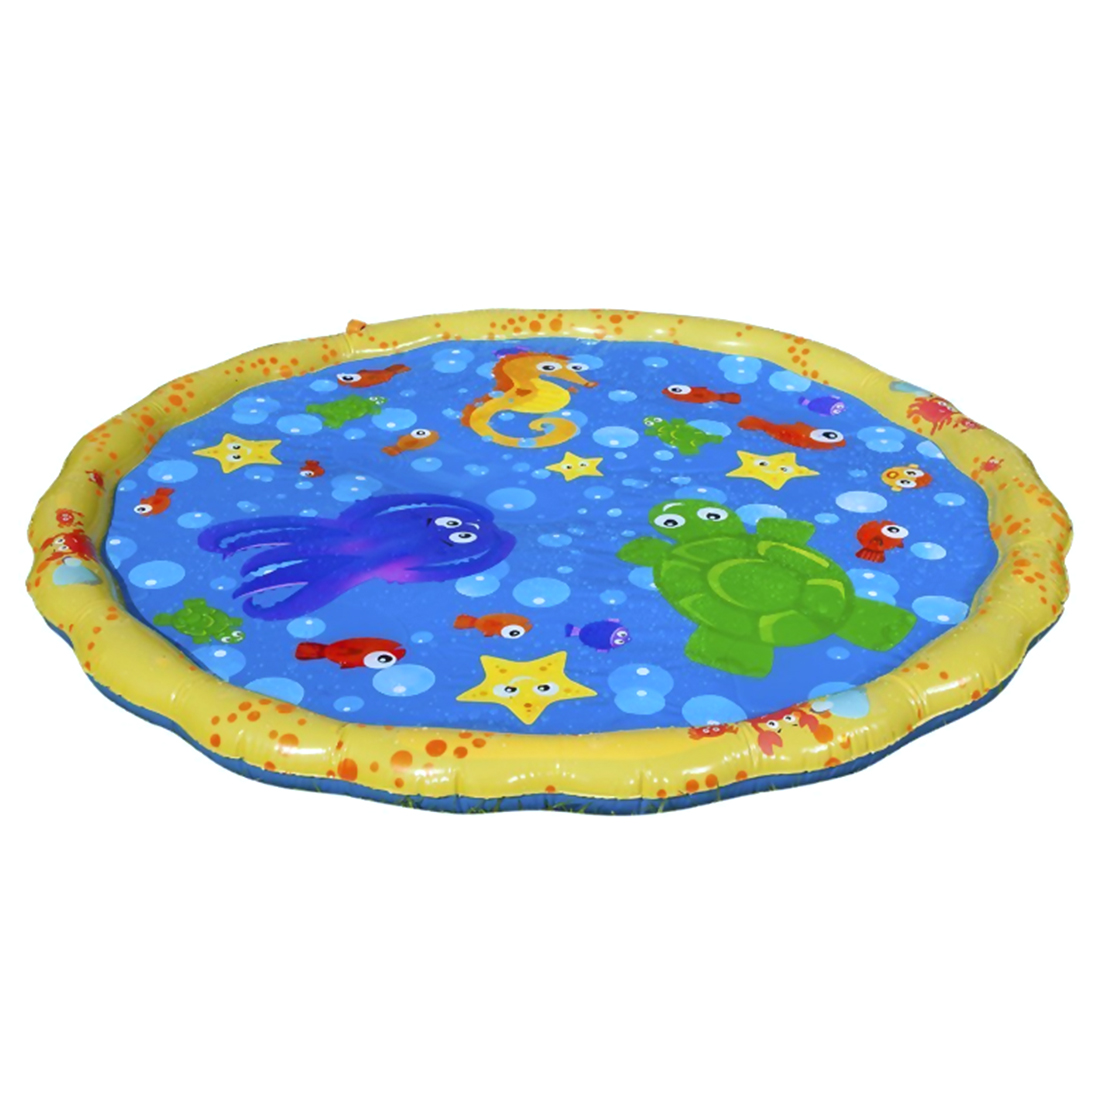 Children'S Fun 100cm Round Inflatable Baby Pad Water Mat Patted Play Cushion For Infant Baby Water Pad Baby Belly Time Game Pad